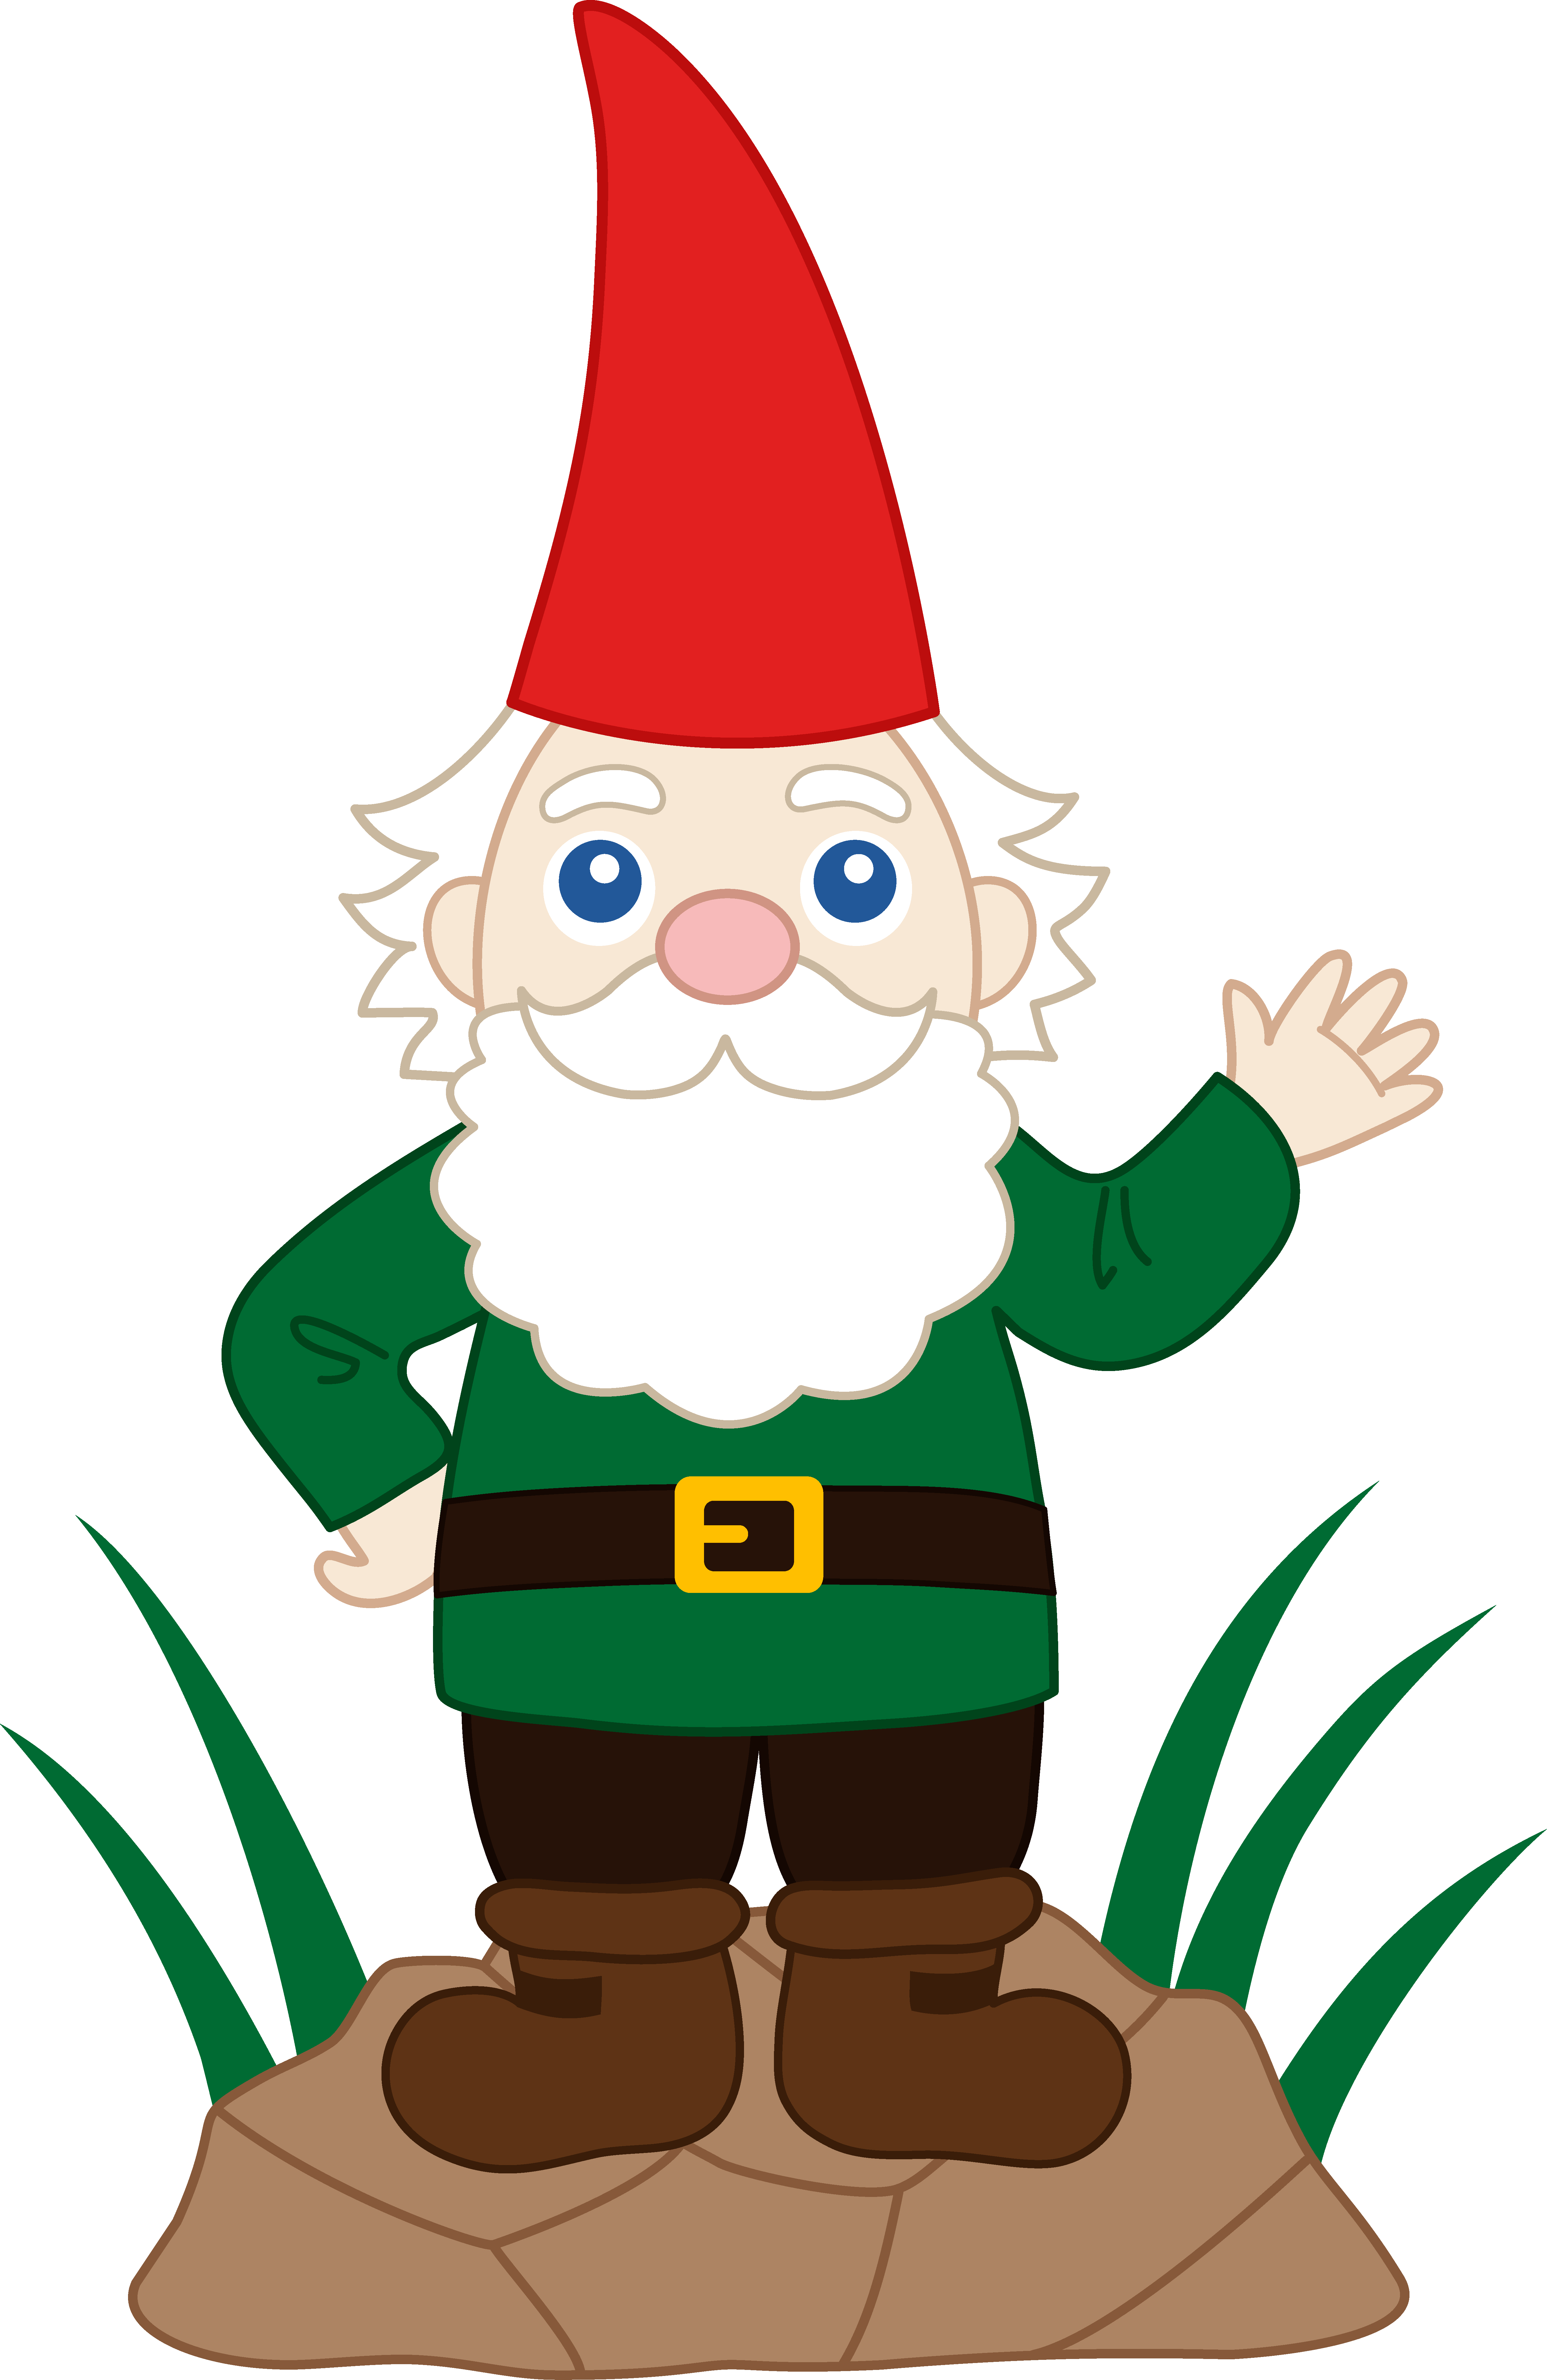 Elf house clipart svg library download Garden gnome clipart public domain collection svg library download